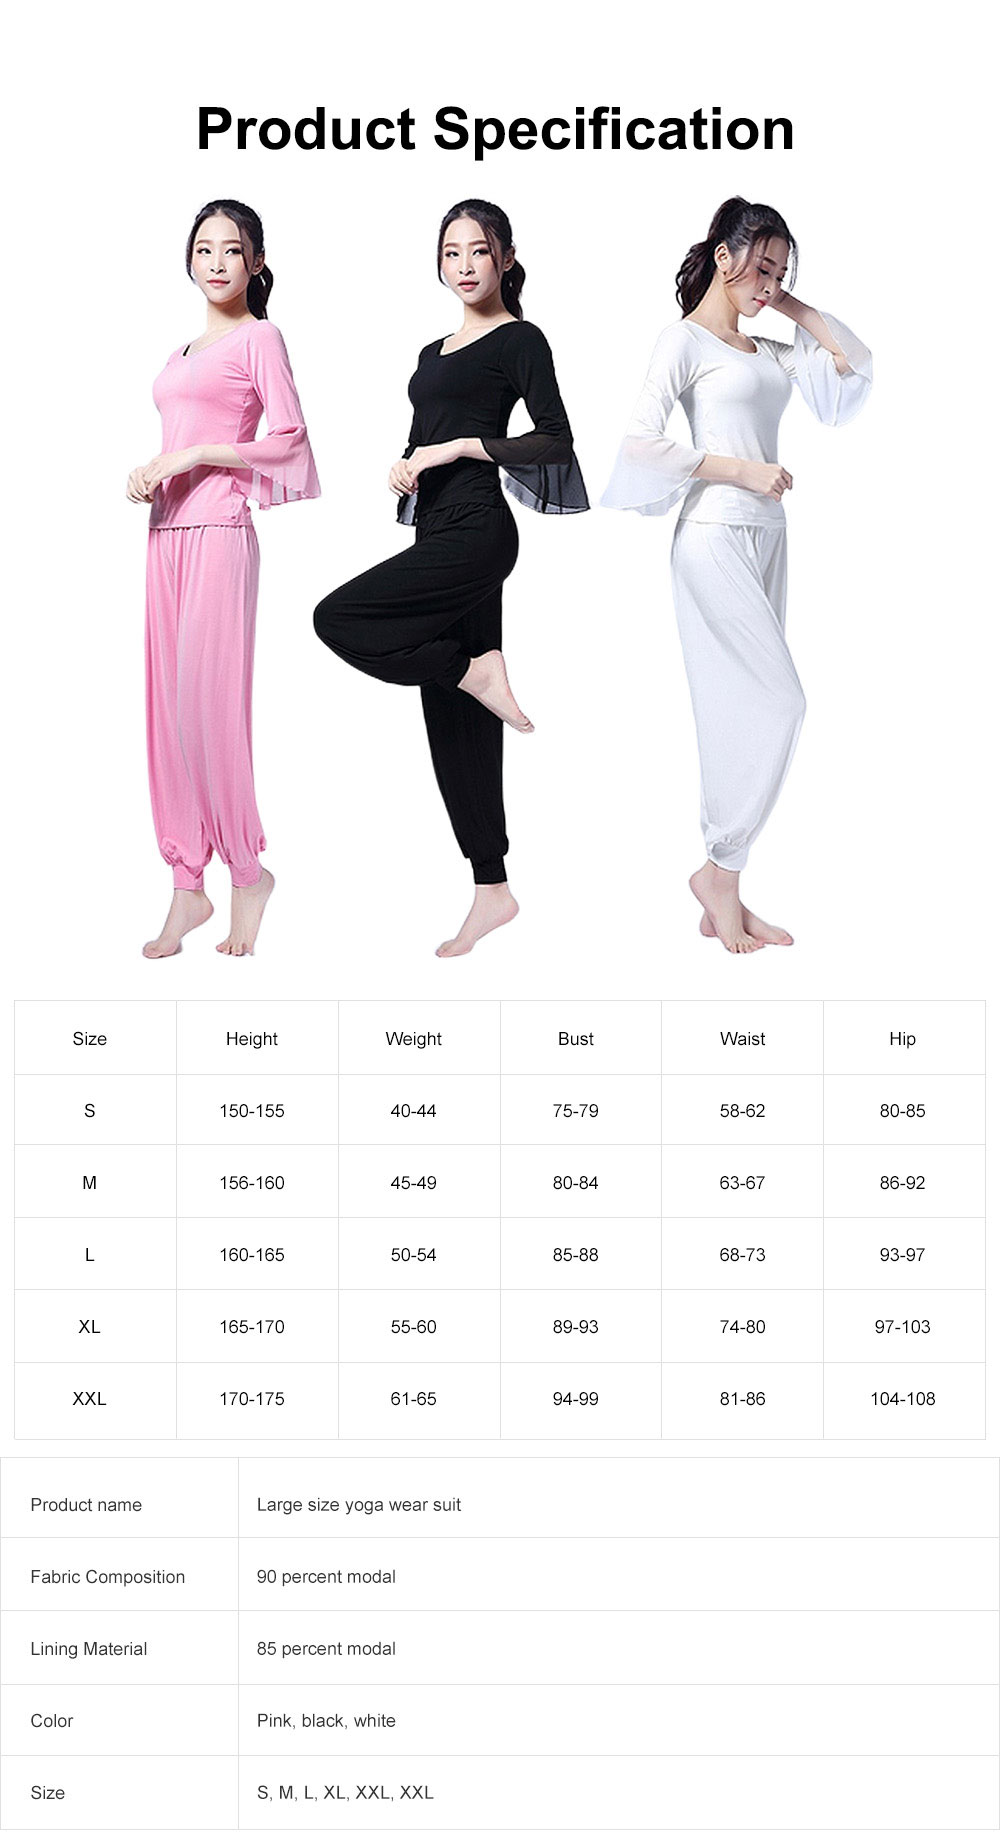 Skin-friendly Yoga Wear Suit, Loose Performance Wear Large Size, Loose Clothes Suit Fitness Dress Suit for Women 2019 6